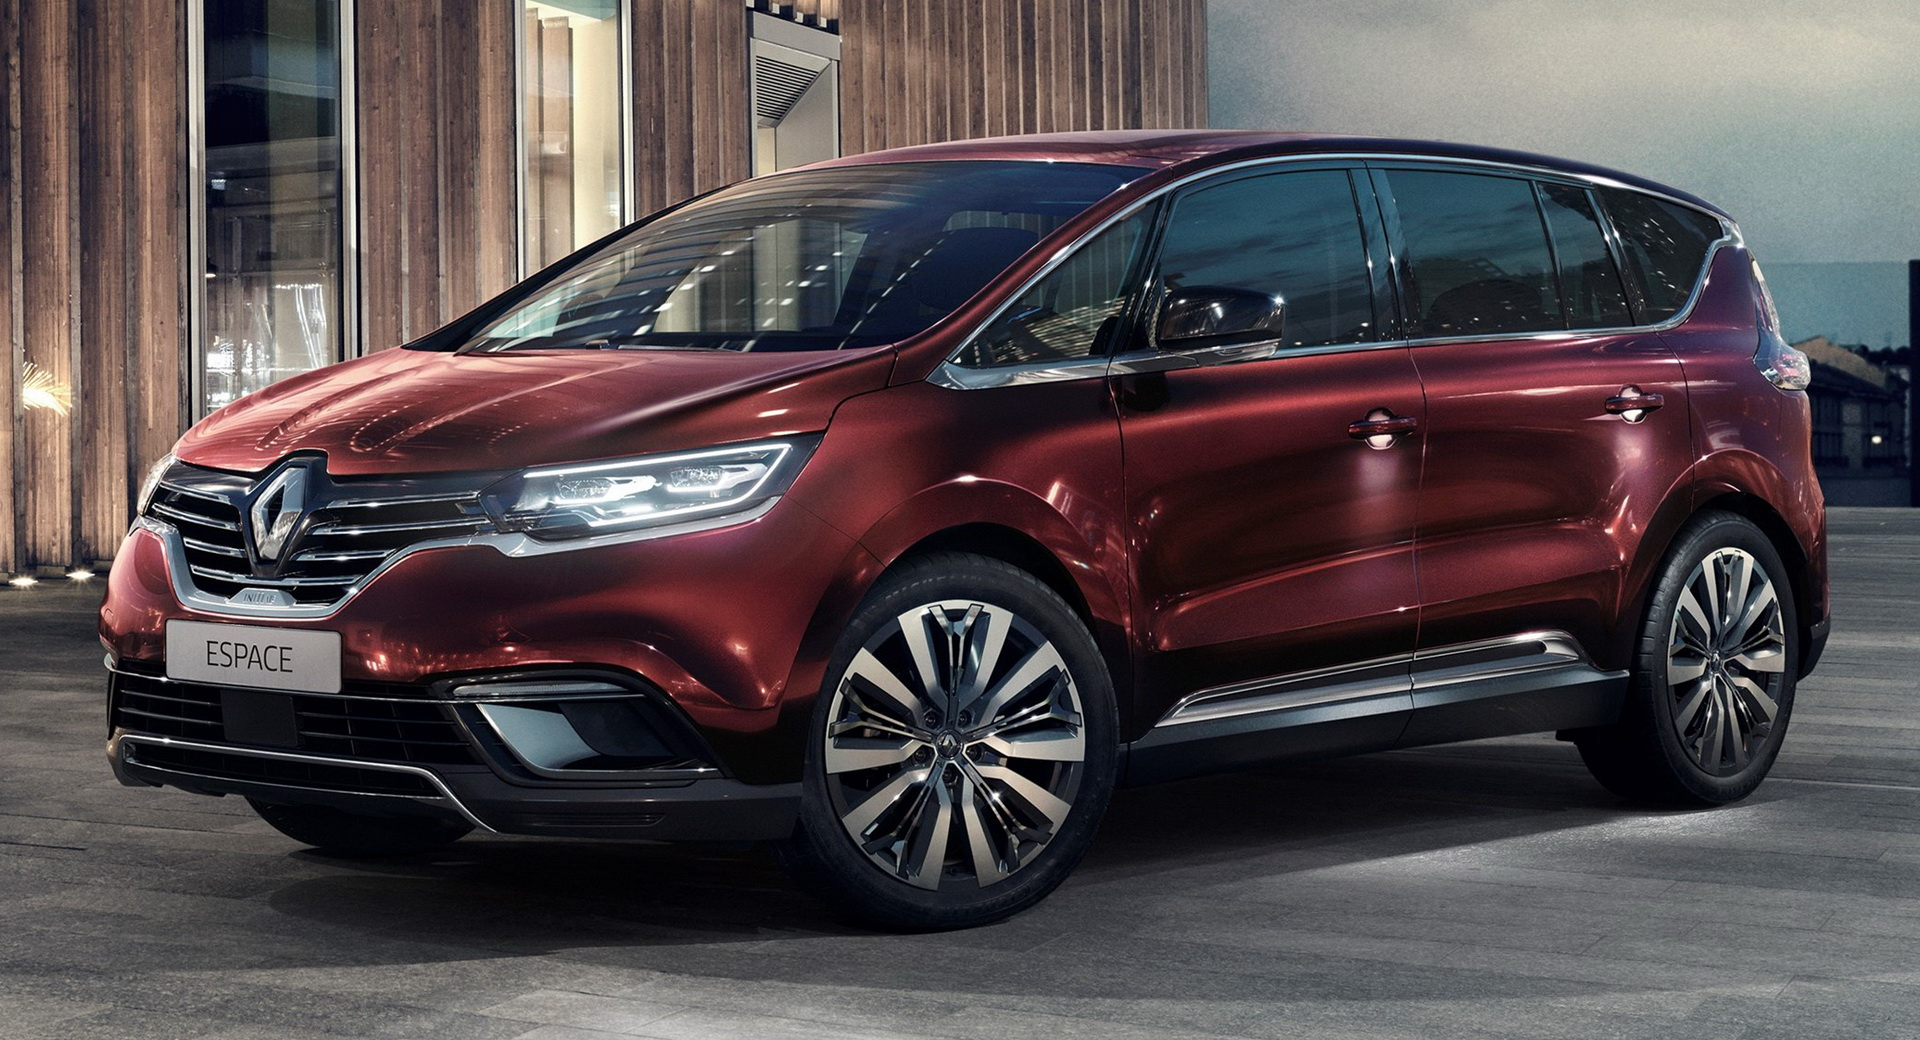 Led Headlights For Cars >> 2020 Renault Espace Arrives With Modest Updates, Promises ...